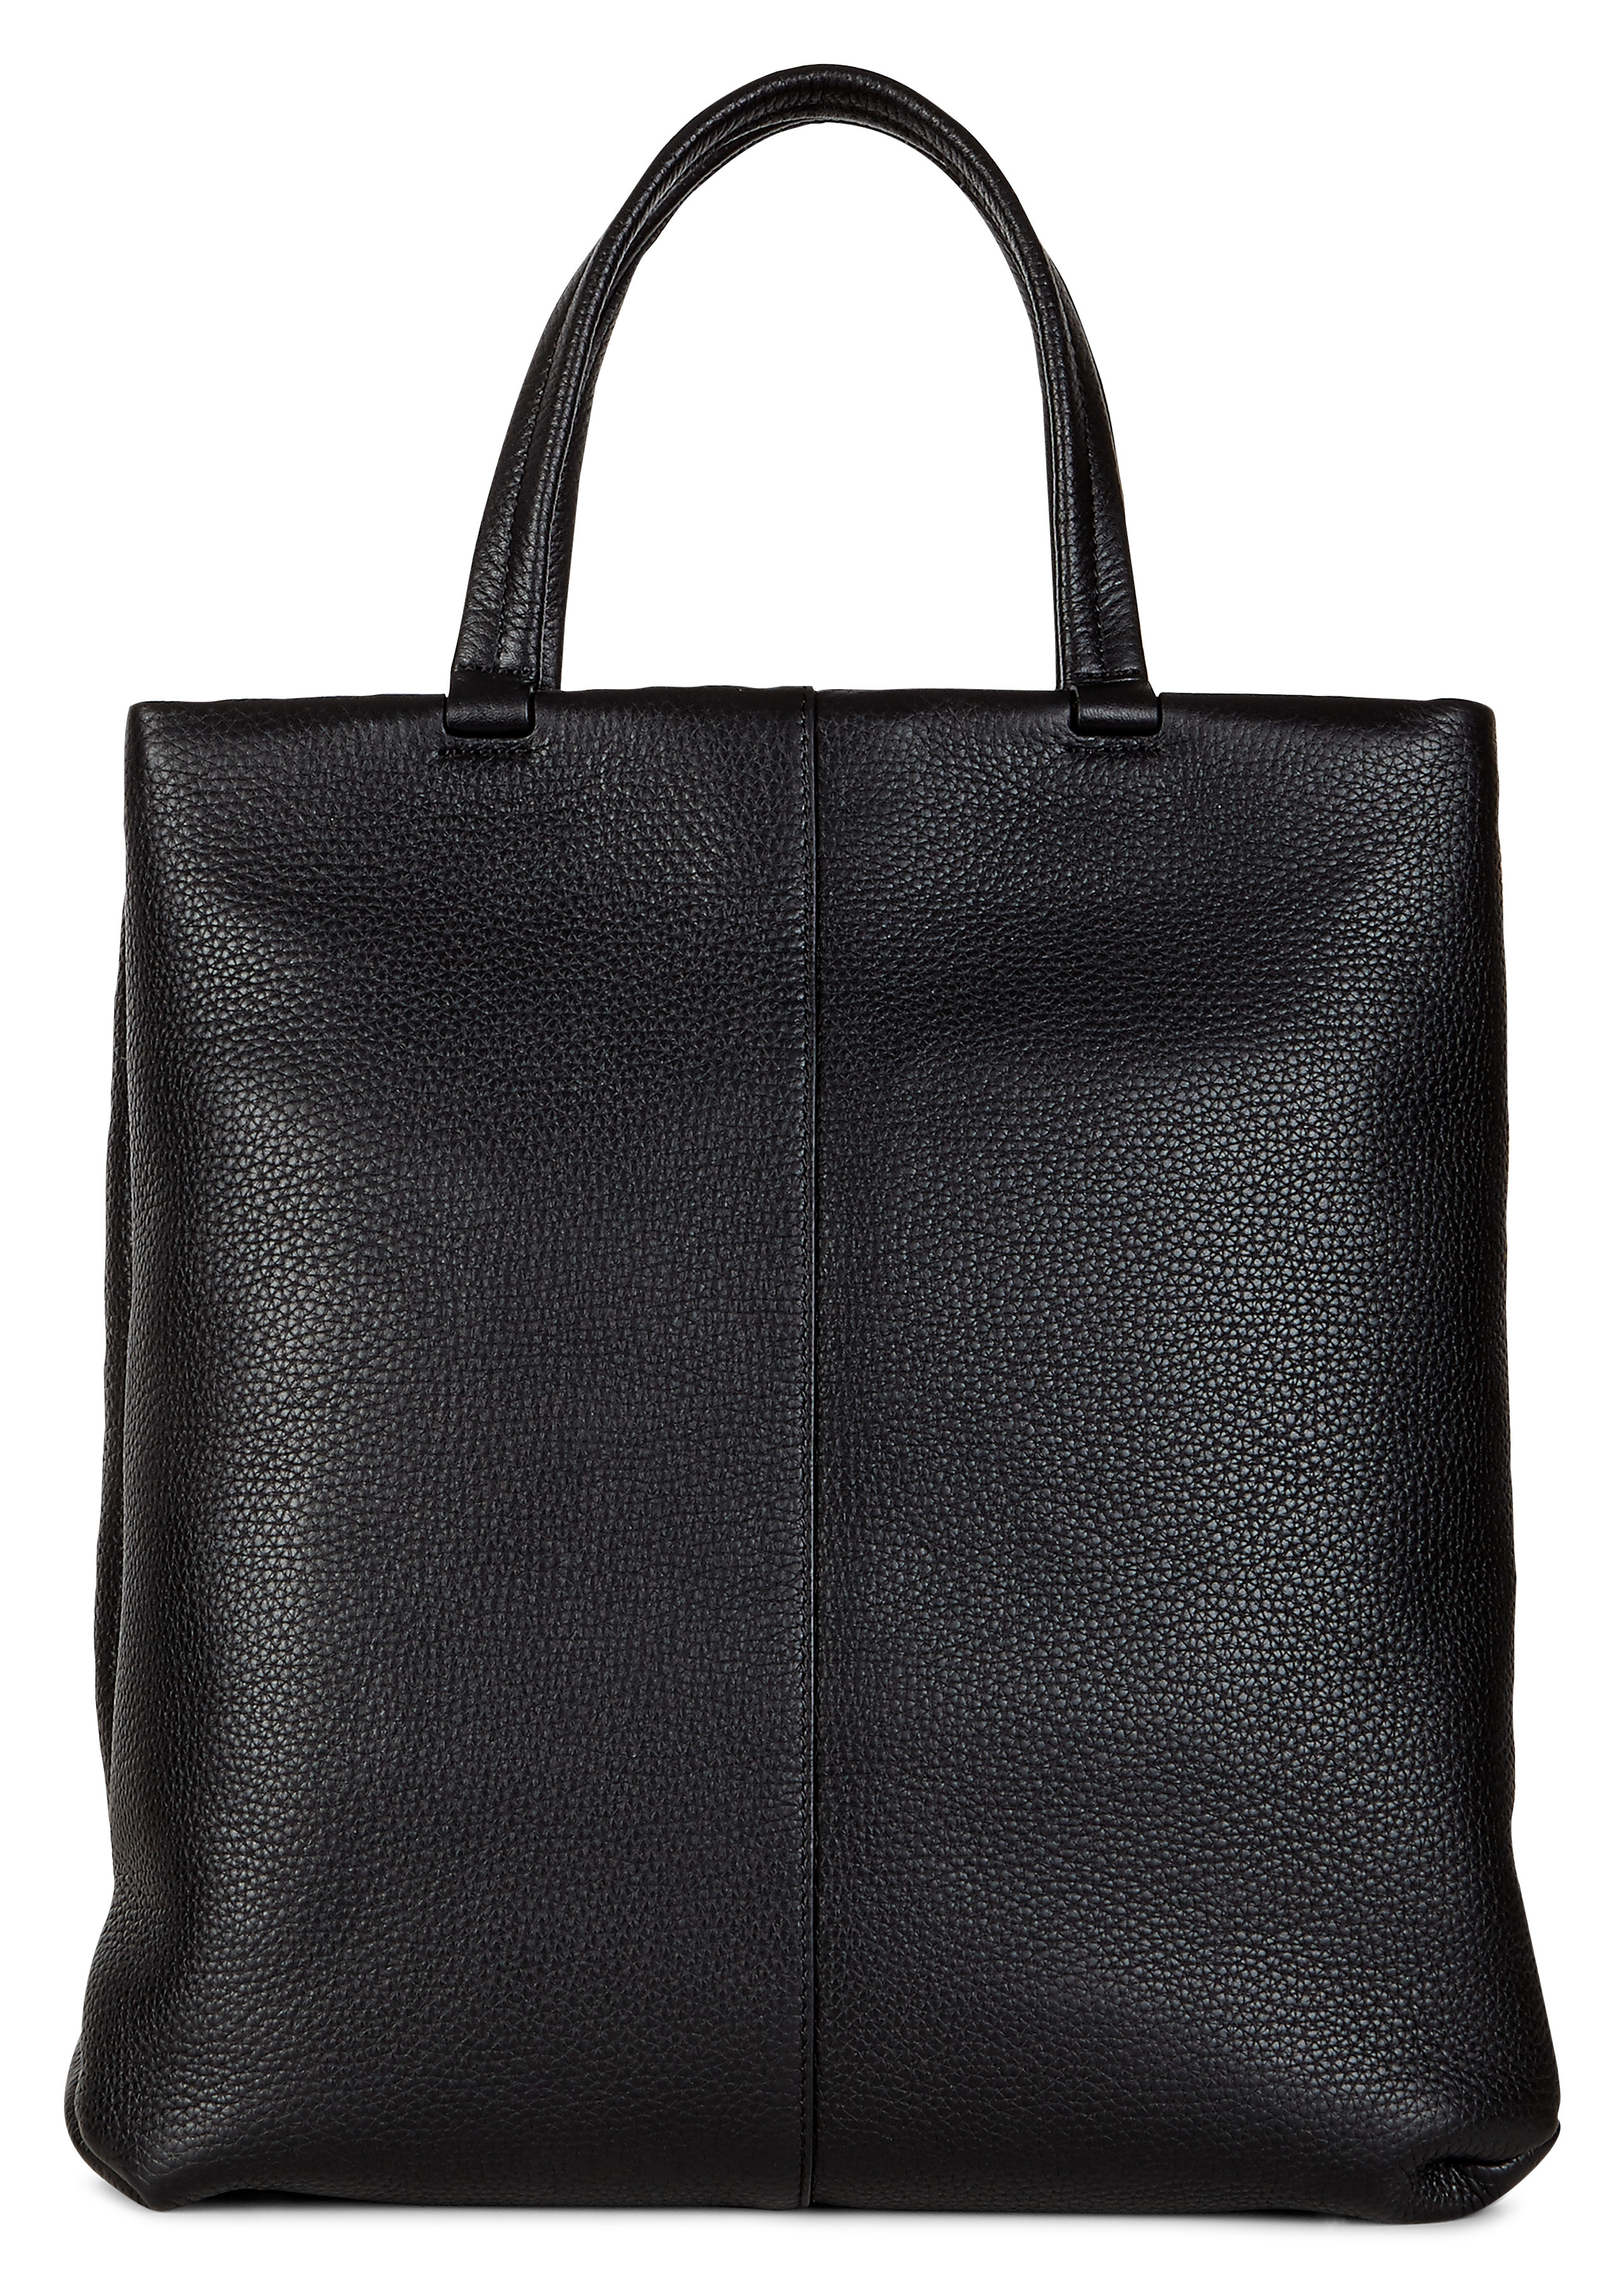 Image of ECCO Isan 2 Tote